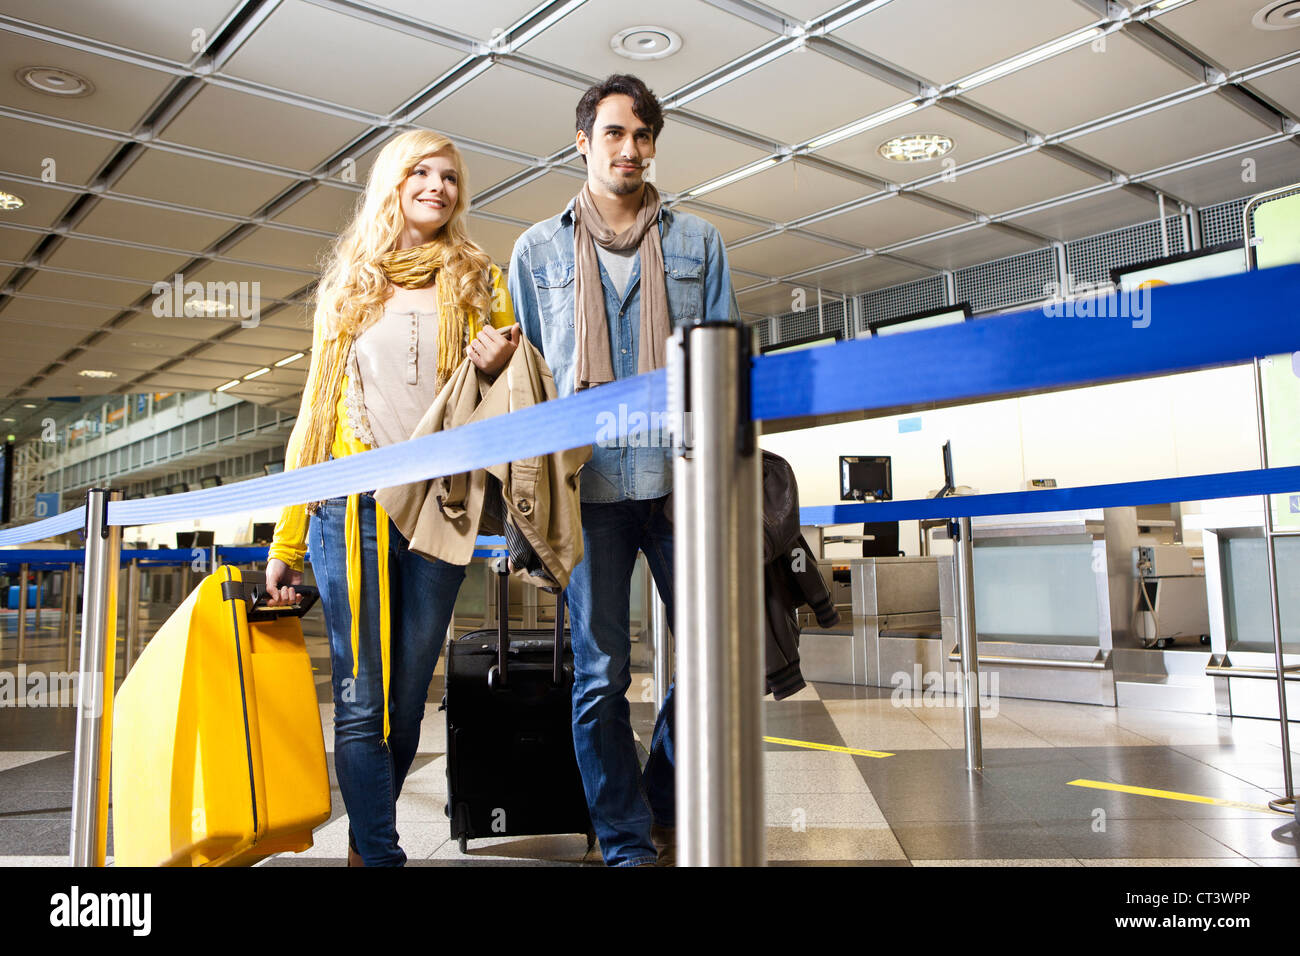 Couple rolling luggage in airport - Stock Image